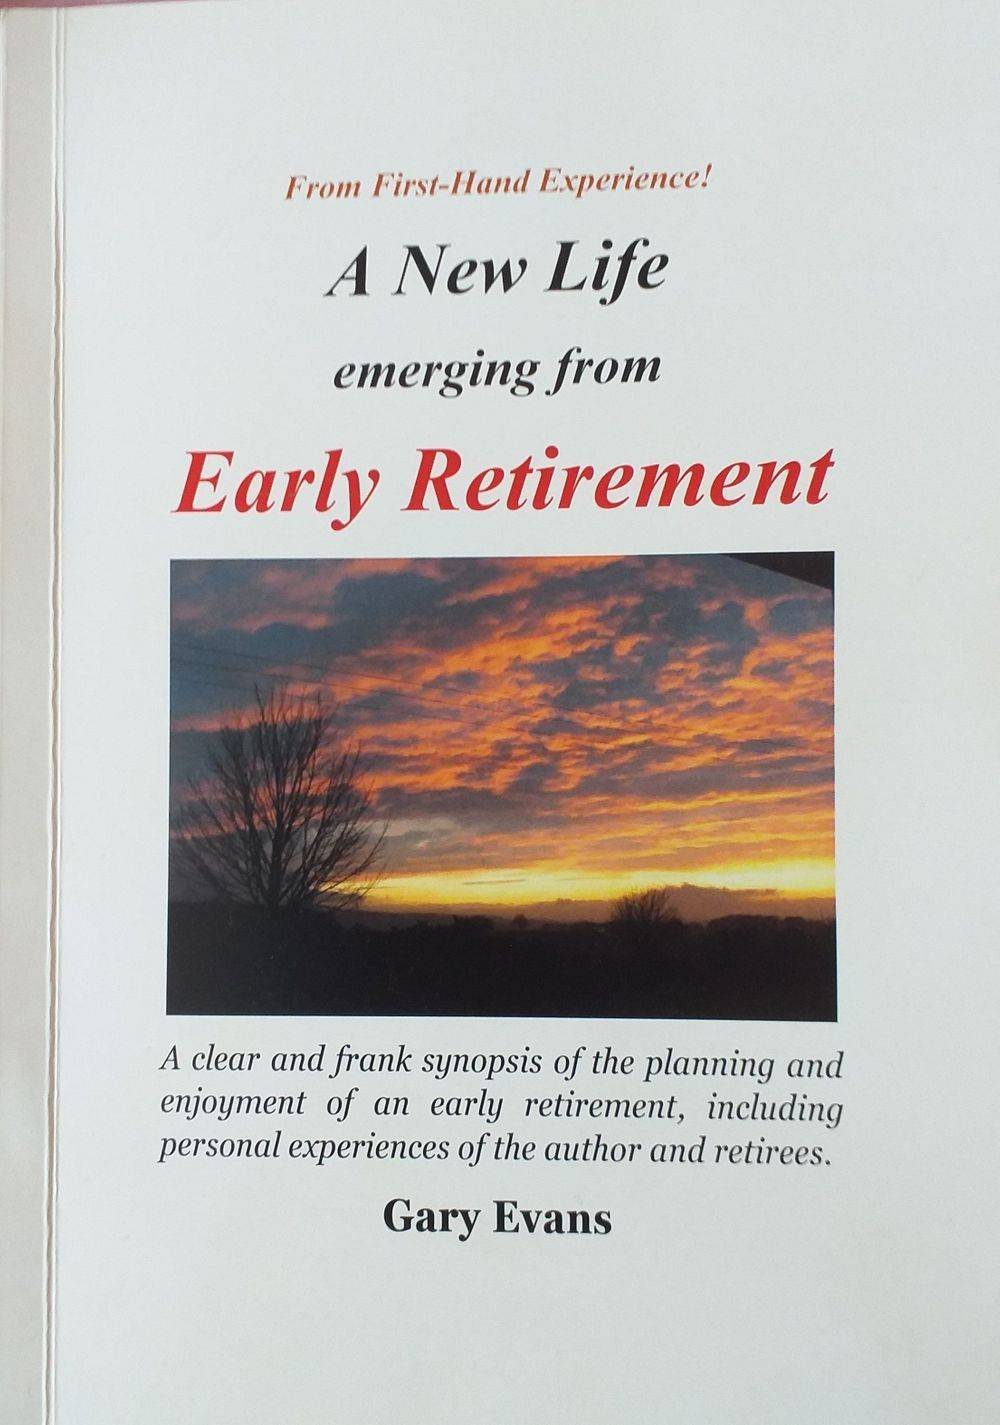 early retirement, planning for the future